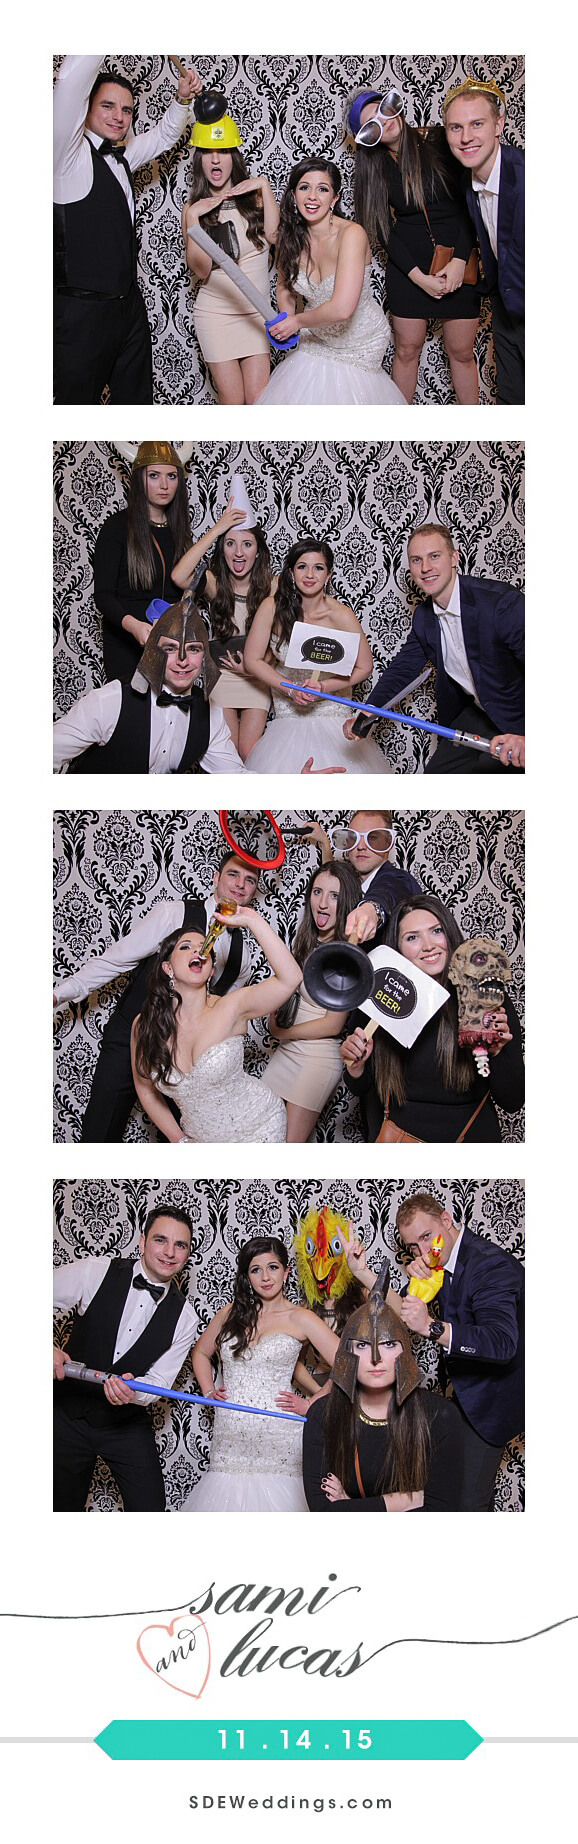 Toronto Paradise Banquet Hall Wedding Photo Booth Rental 2